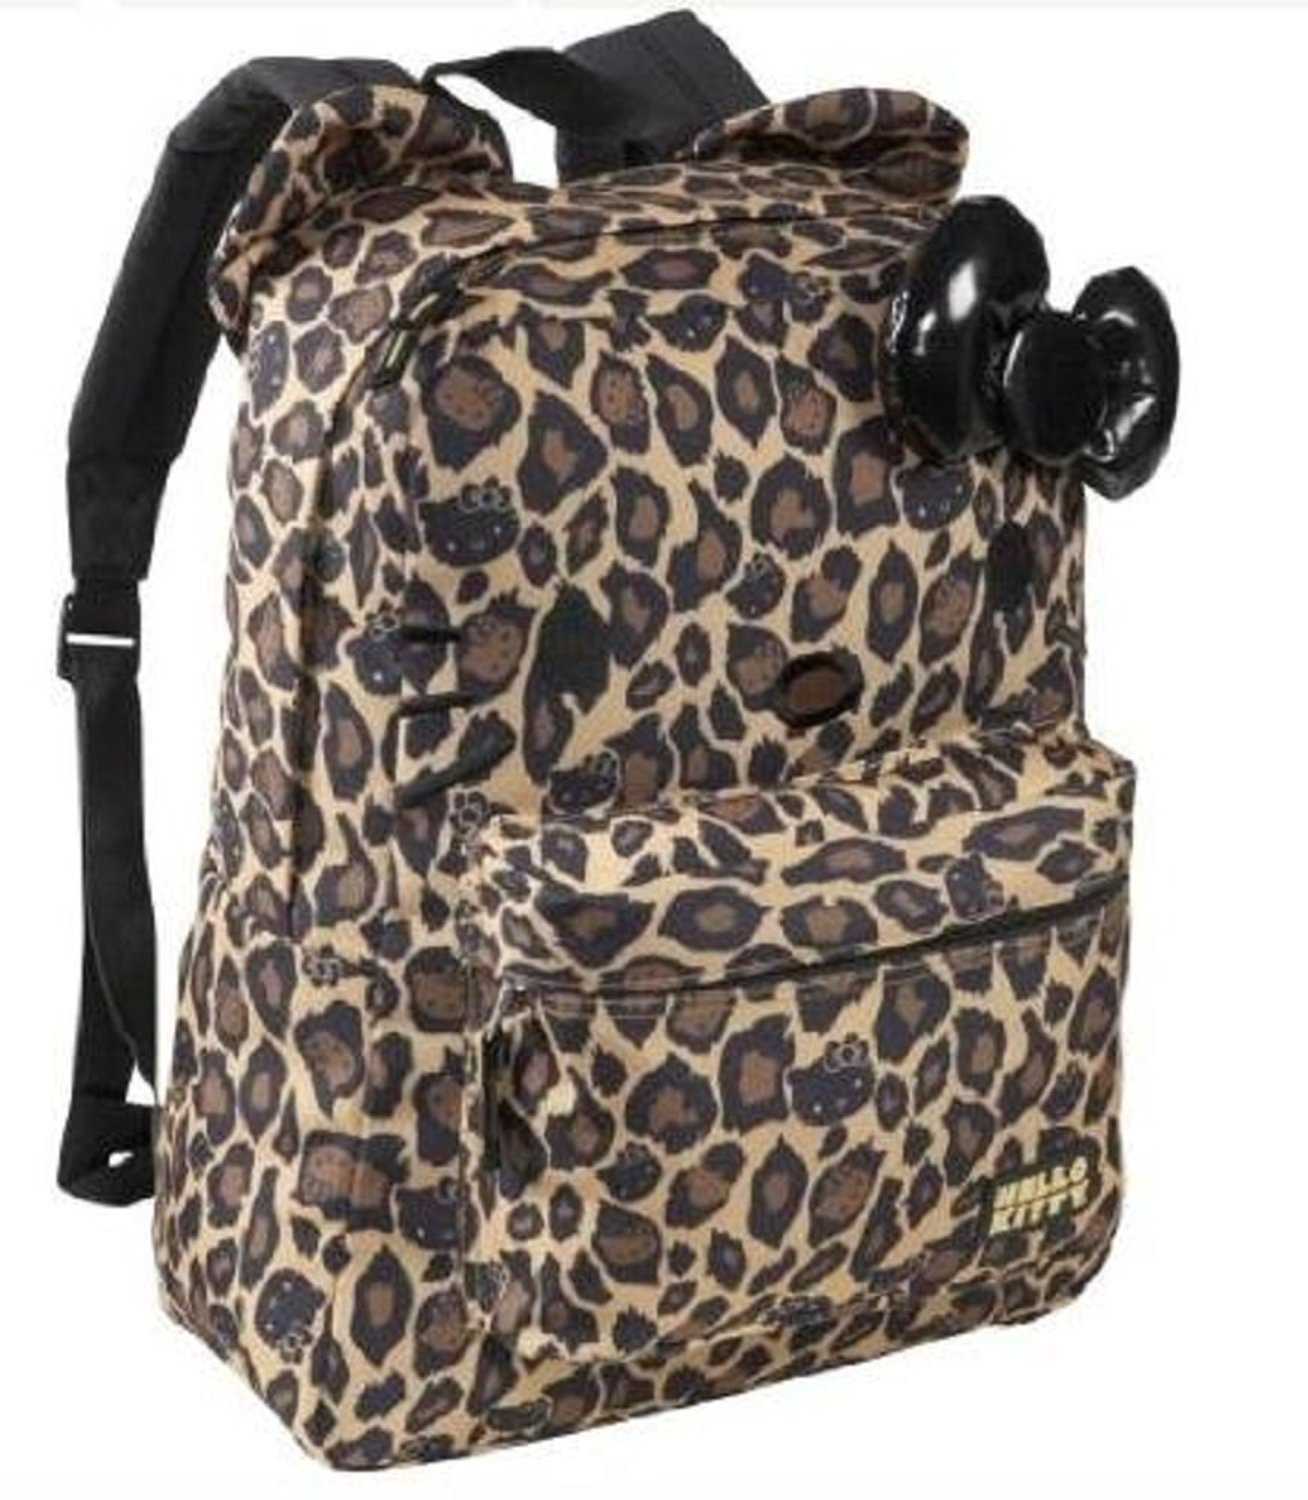 Hello Kitty Leopard Print Backpack with Ears and 3D Bow - Full Size Backpack  16